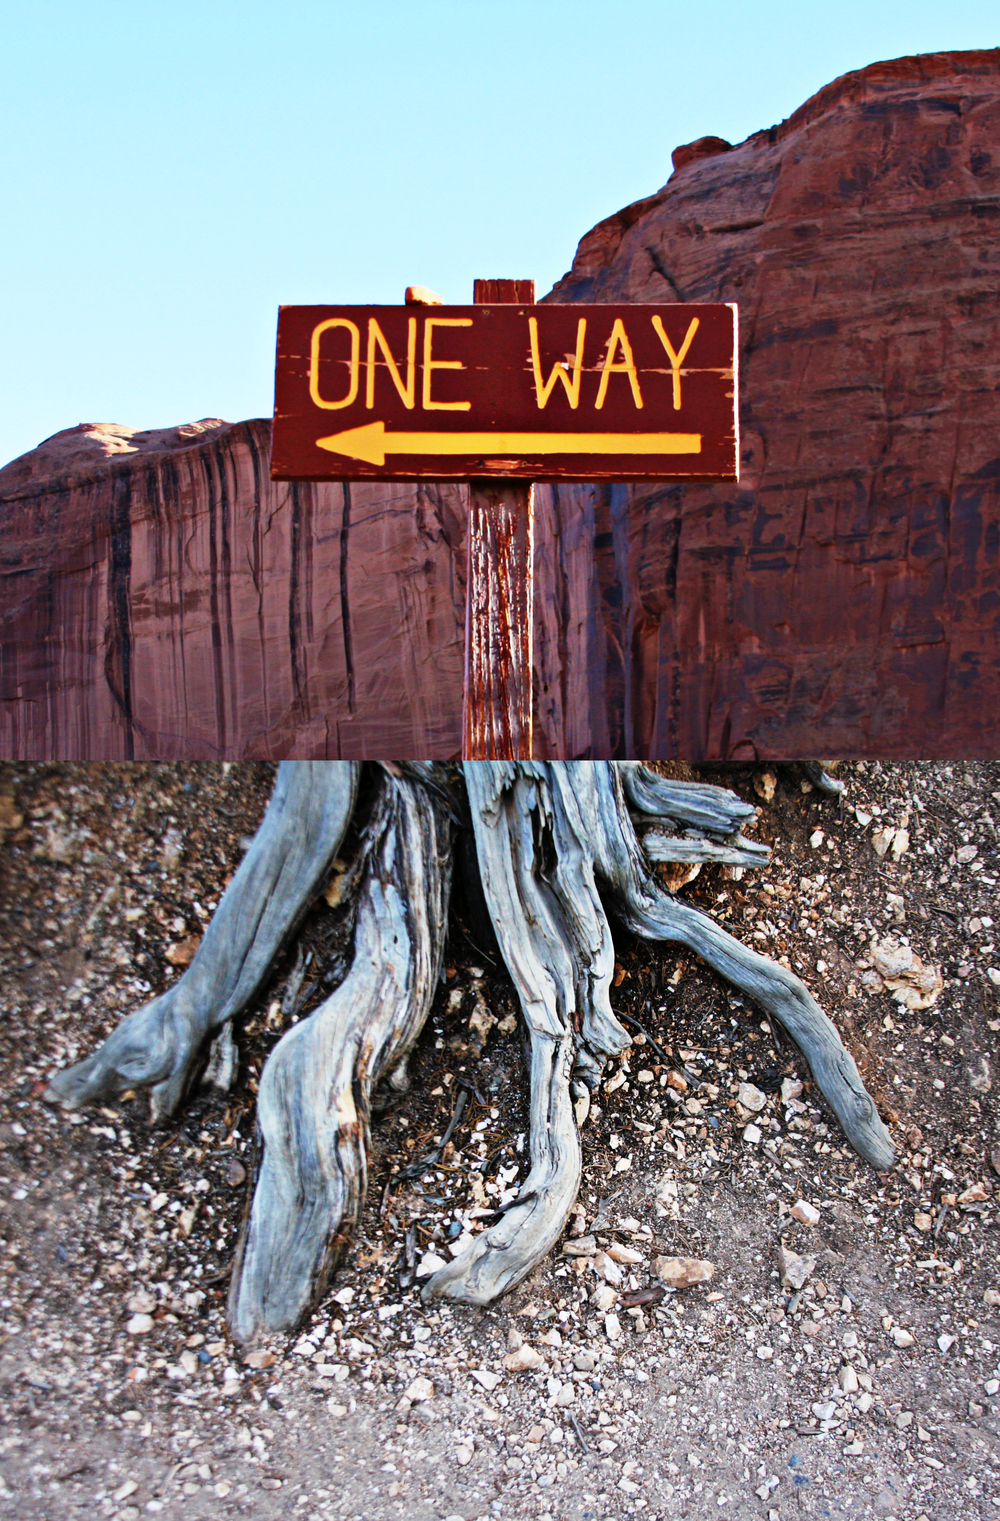 Mattie_Kannard_One_Way_Arizona_2015.jpg